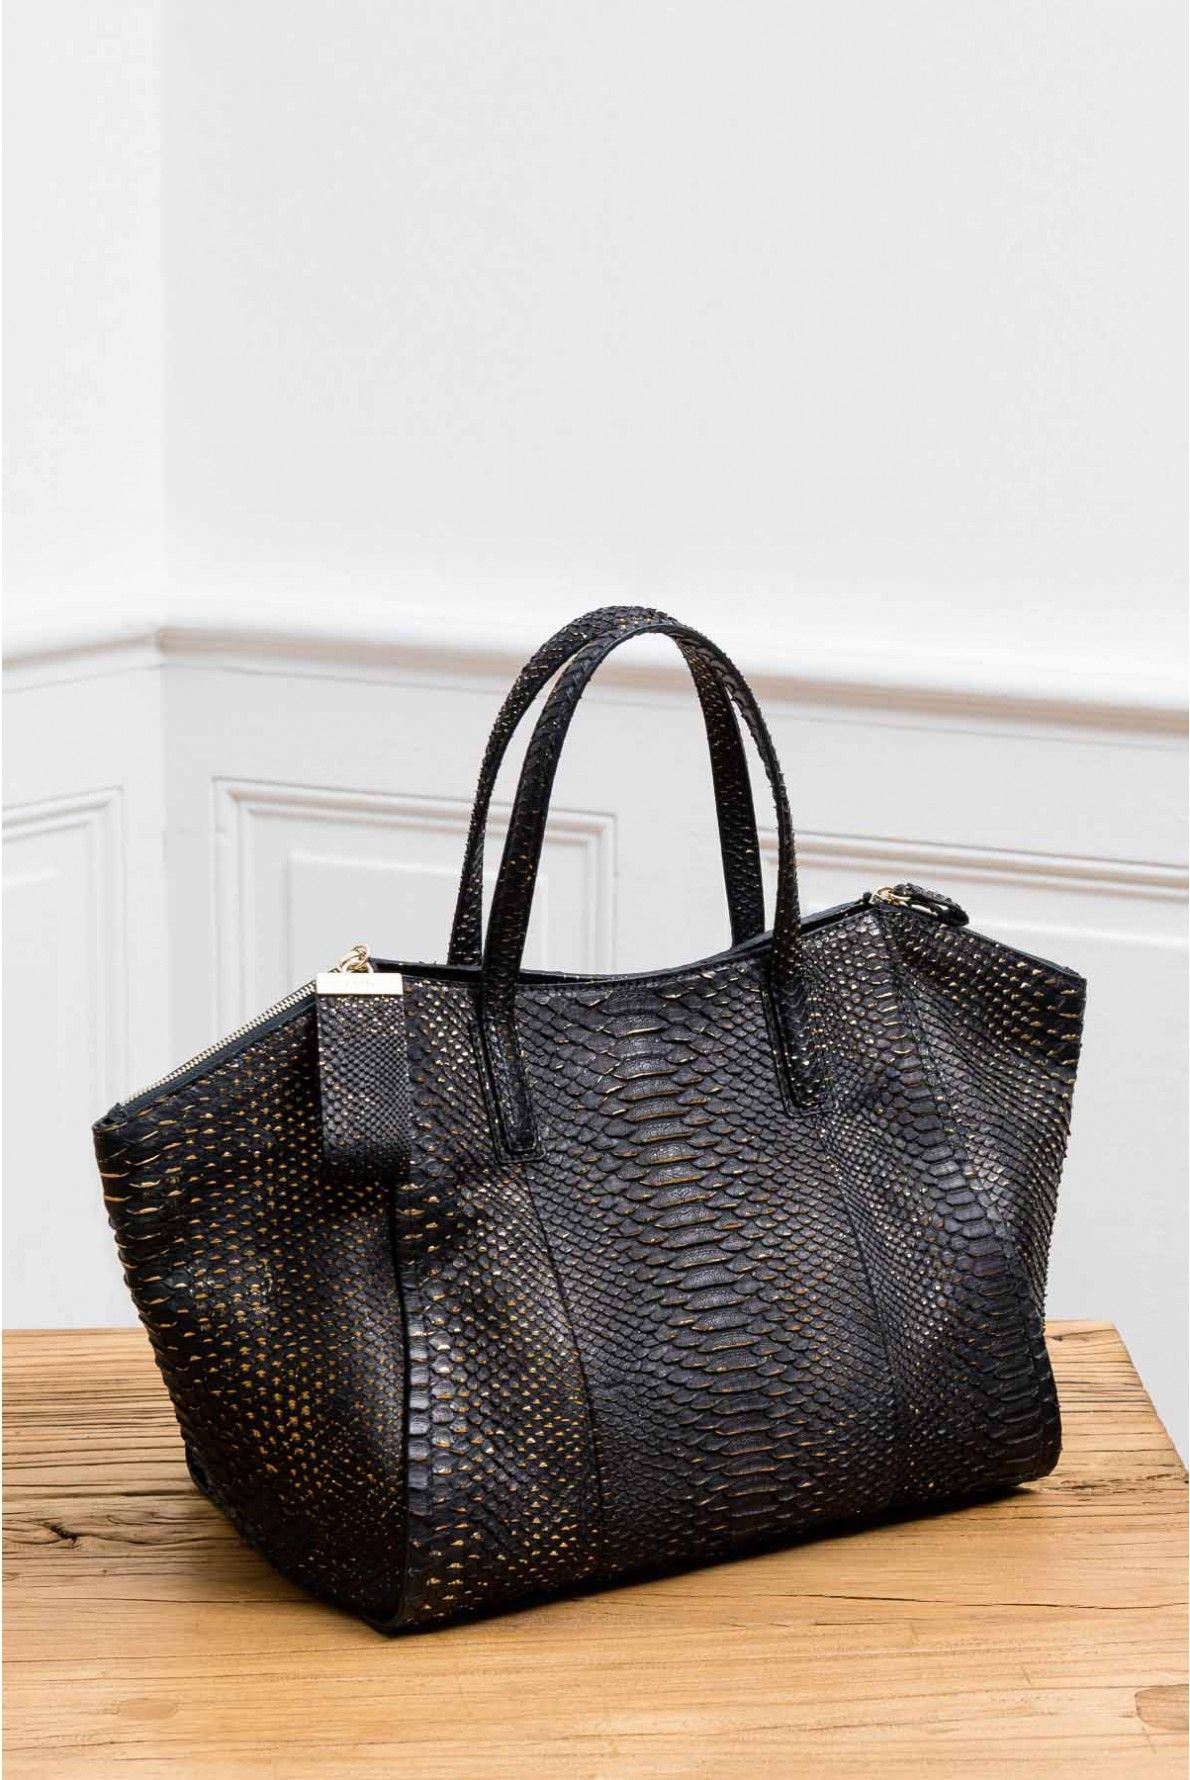 Sac BuciGerard Darel SacNoir NoirLe Wish Et IE9WD2YeH